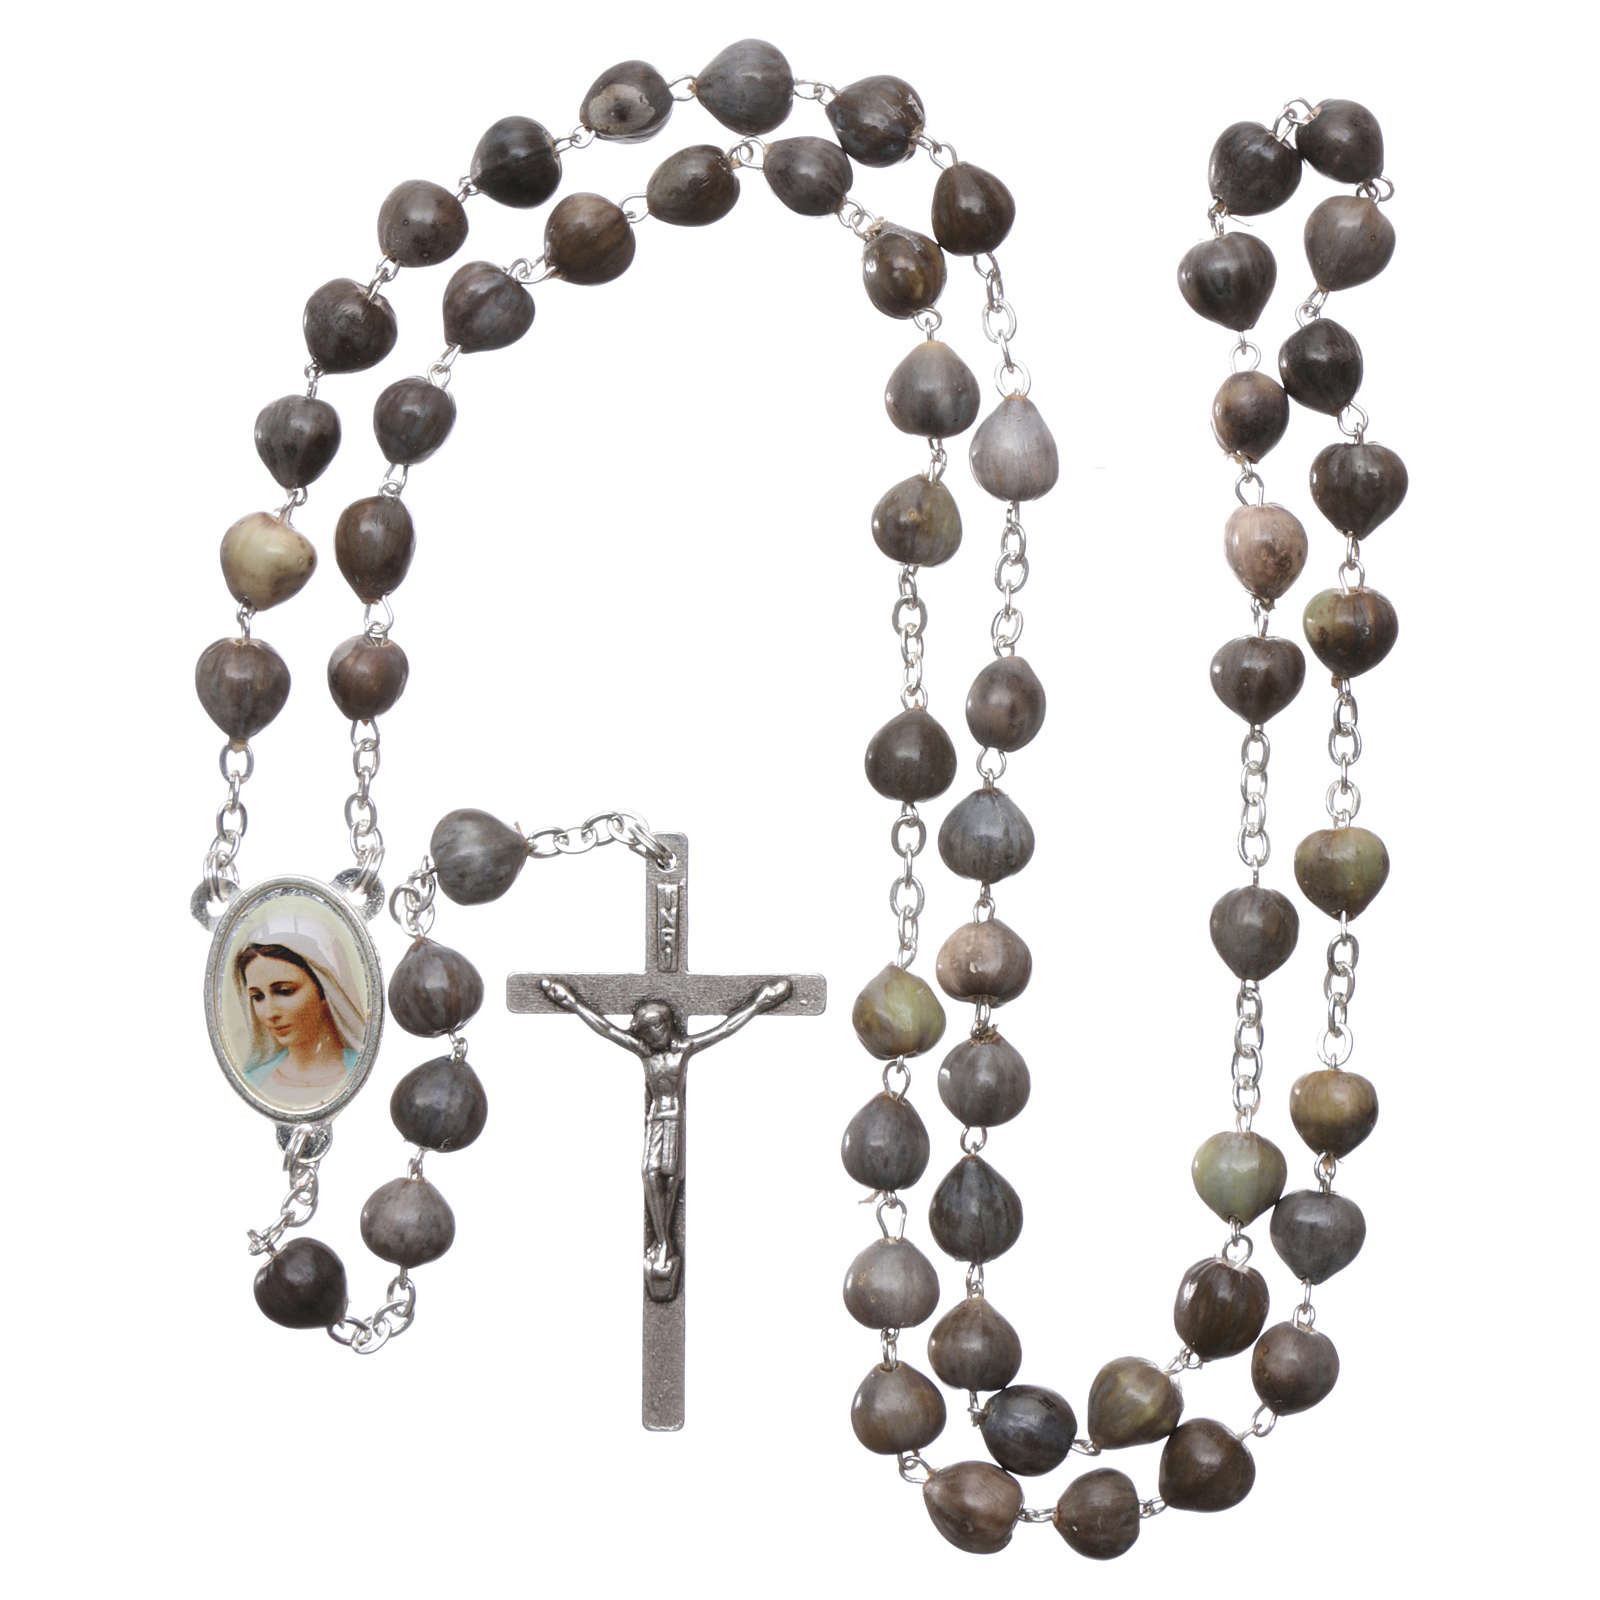 Medjugorje rosary Job's Tears, chain and cross 4